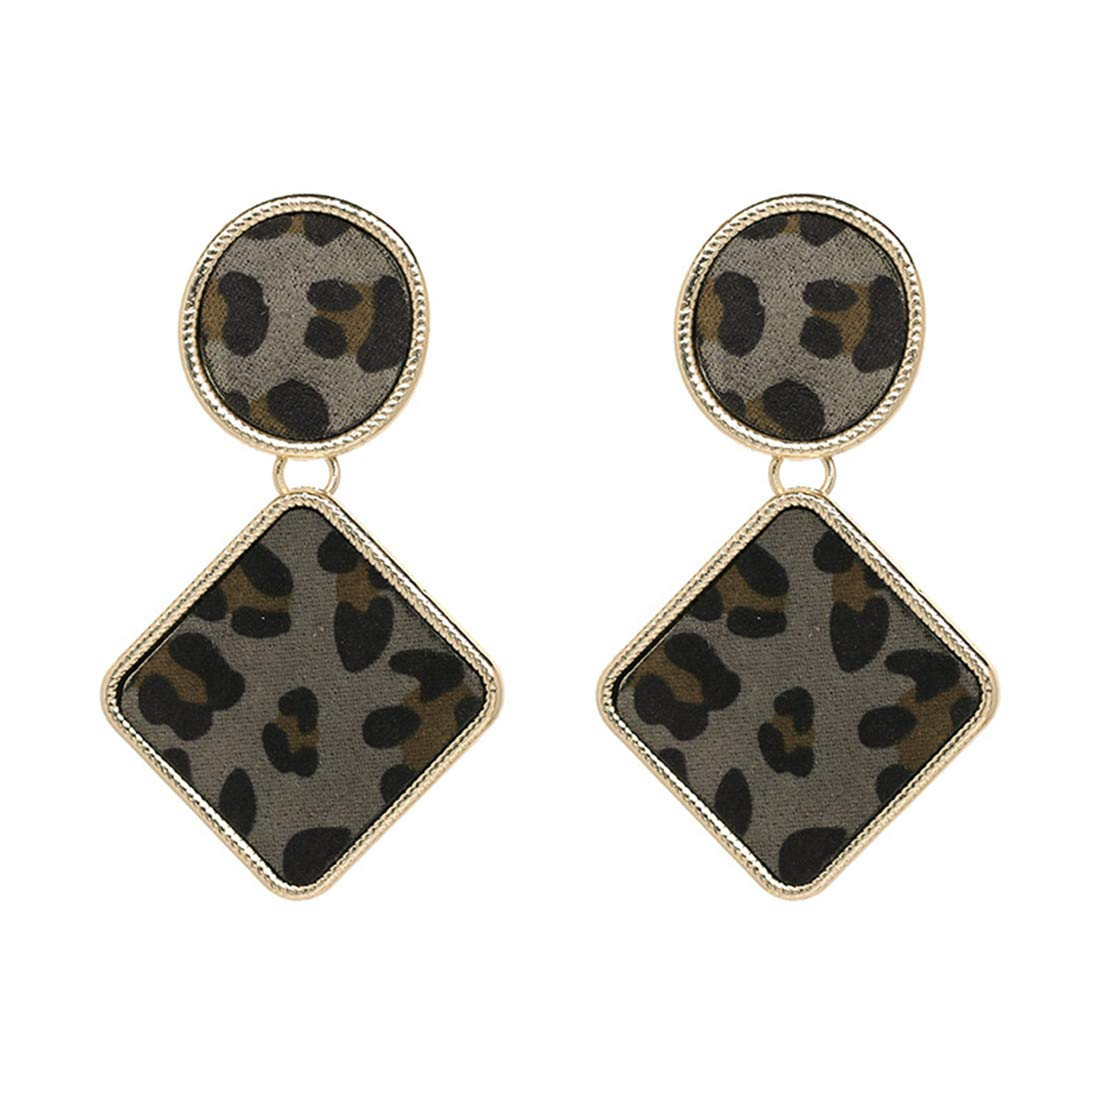 Luxury Colorful Geometry Statement Earrings Gift For Women Girl Birthday Party Leopard Print by Mrsrui